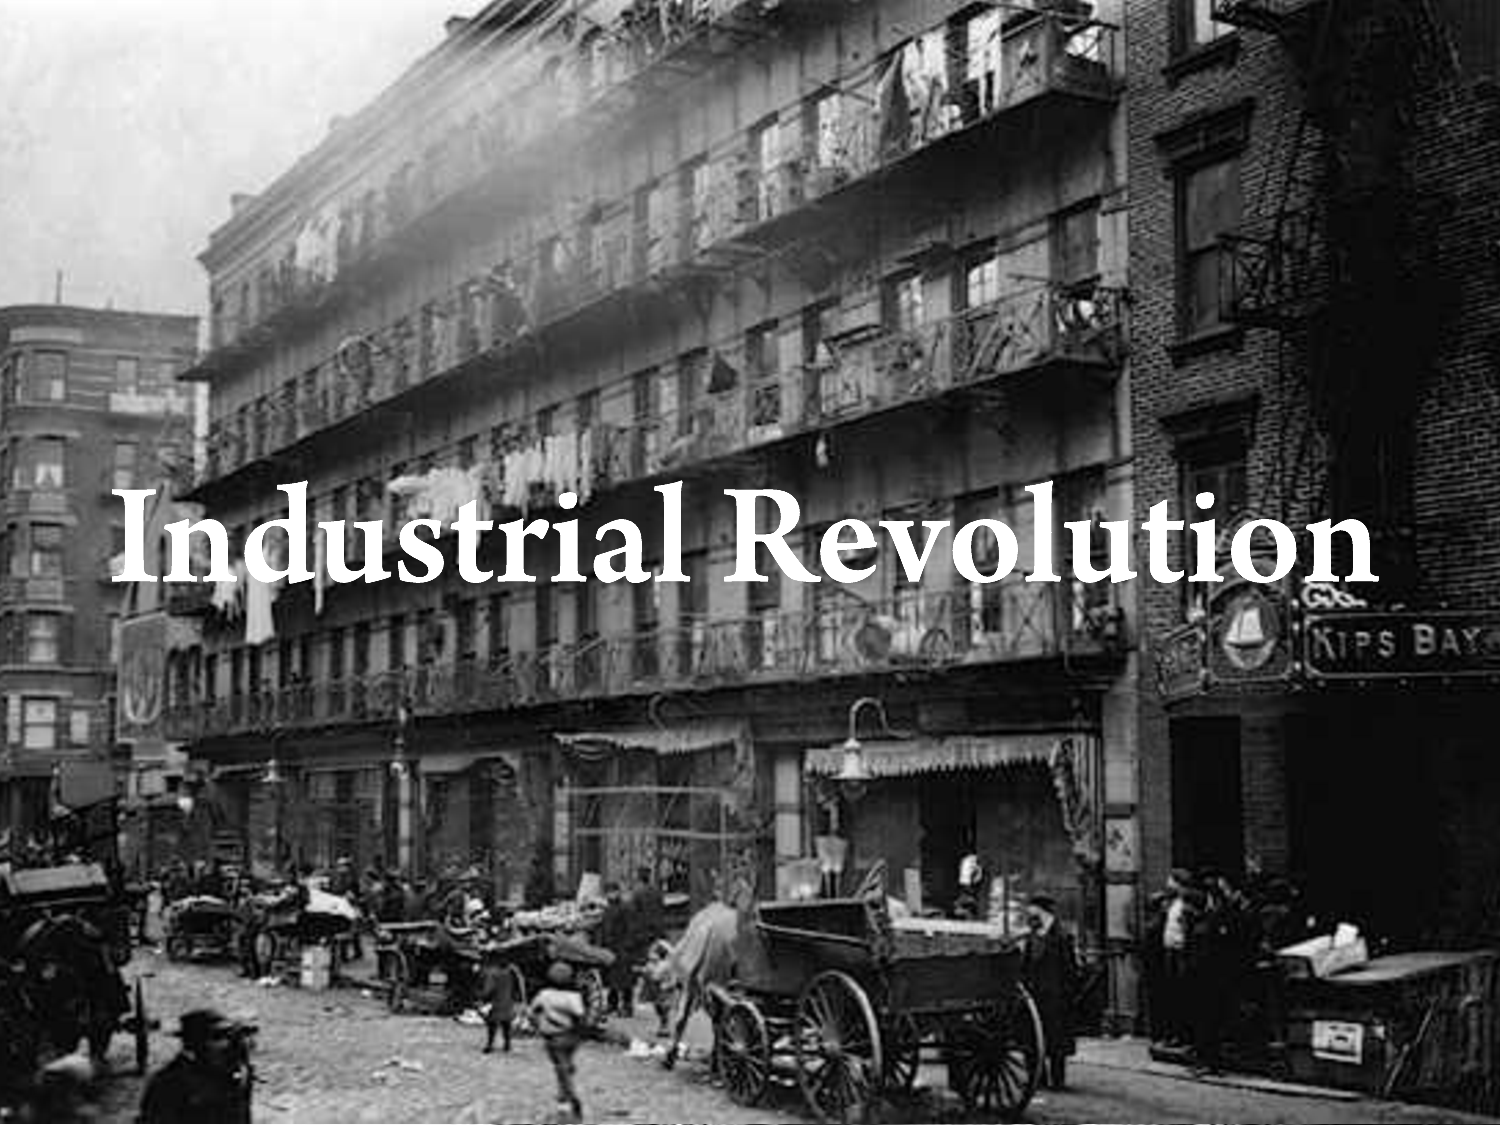 how were the evils of the industrial revolution addressed in england Child labor during the british industrial revolution carolyn tuttle, lake forest college during the late eighteenth and early nineteenth centuries great britain.